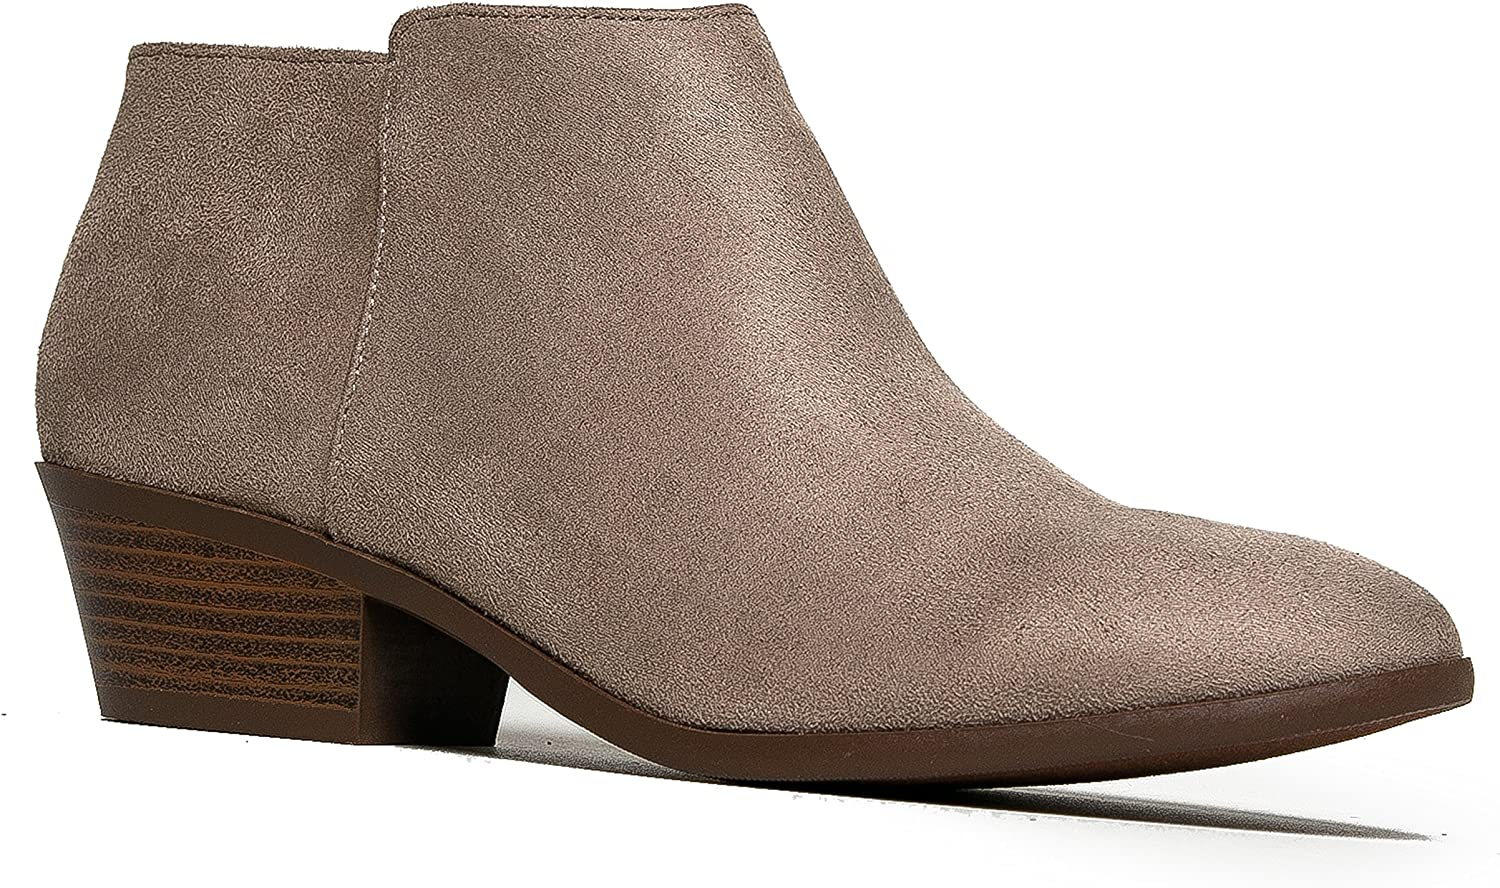 J. Adams Women's Clay Low Heel Western Ankle Bootie - 10 B(M) US